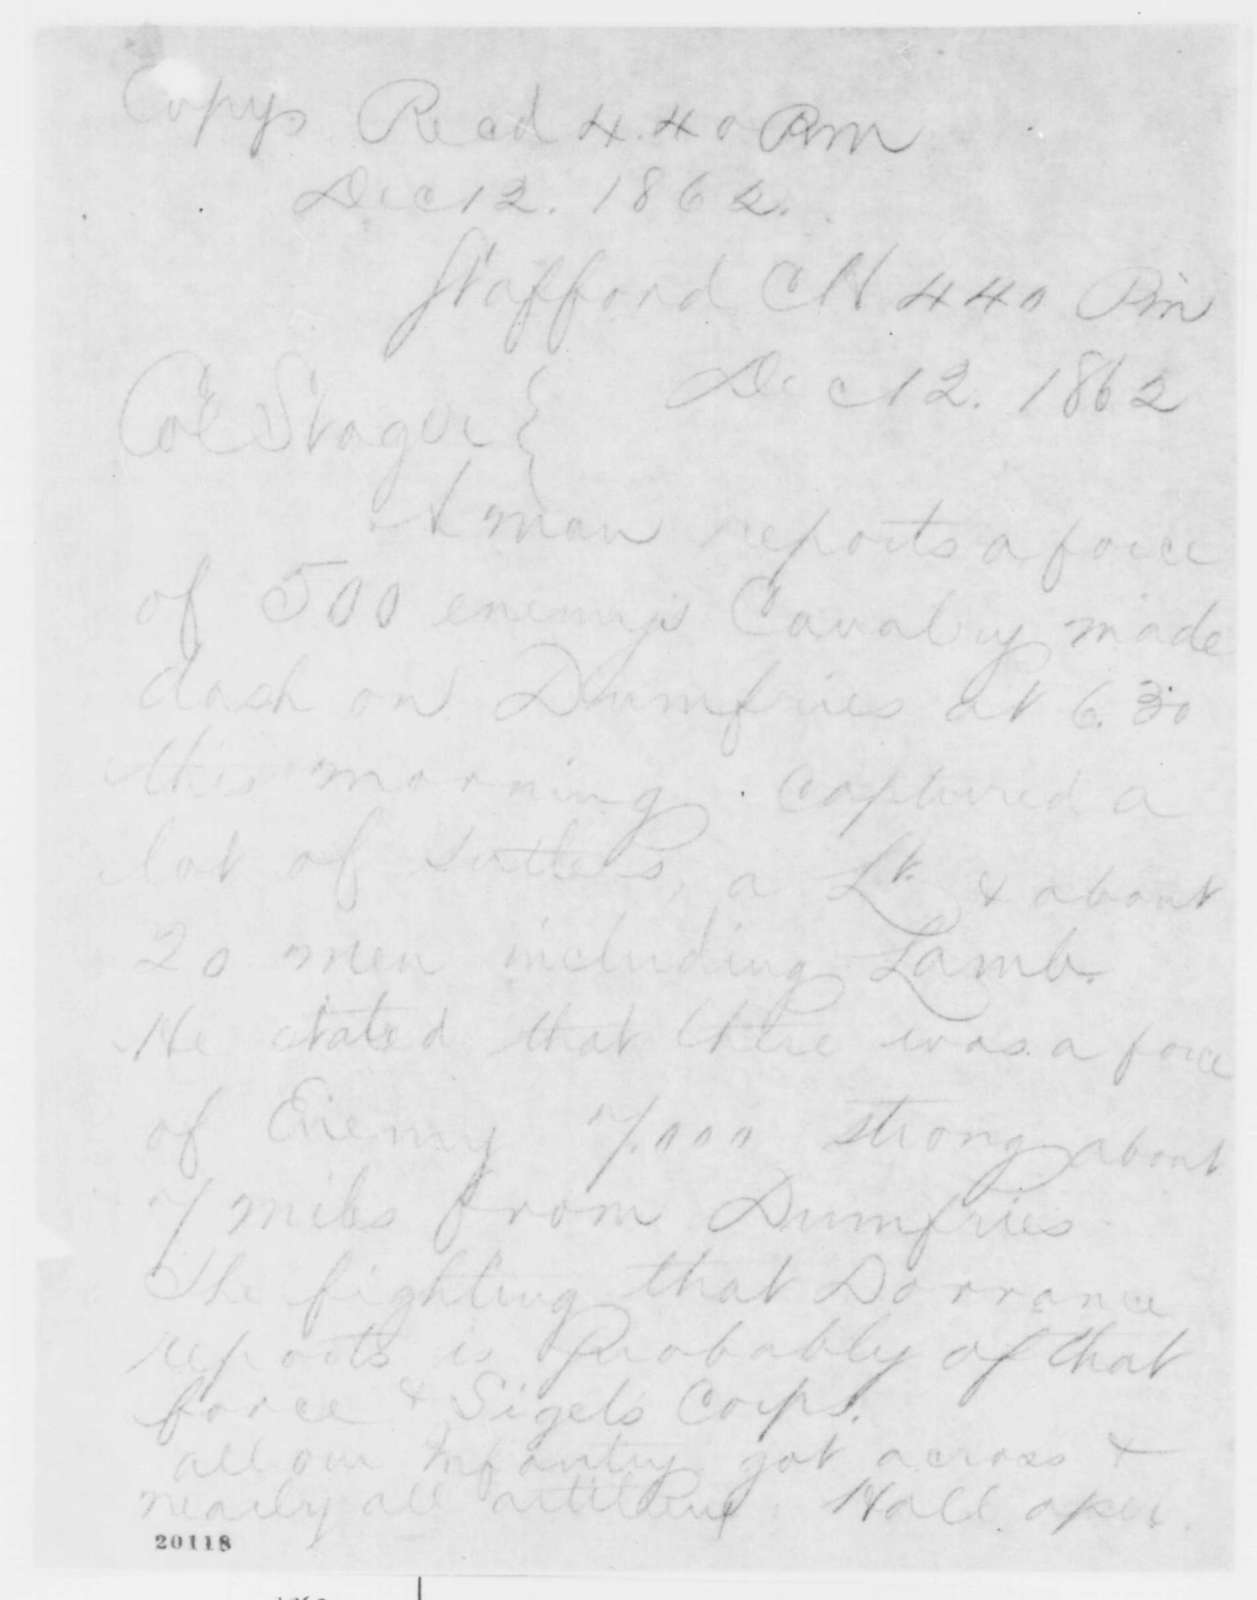 Hall to Anson Stager, Friday, December 12, 1862  (Telegram concerning military affairs)